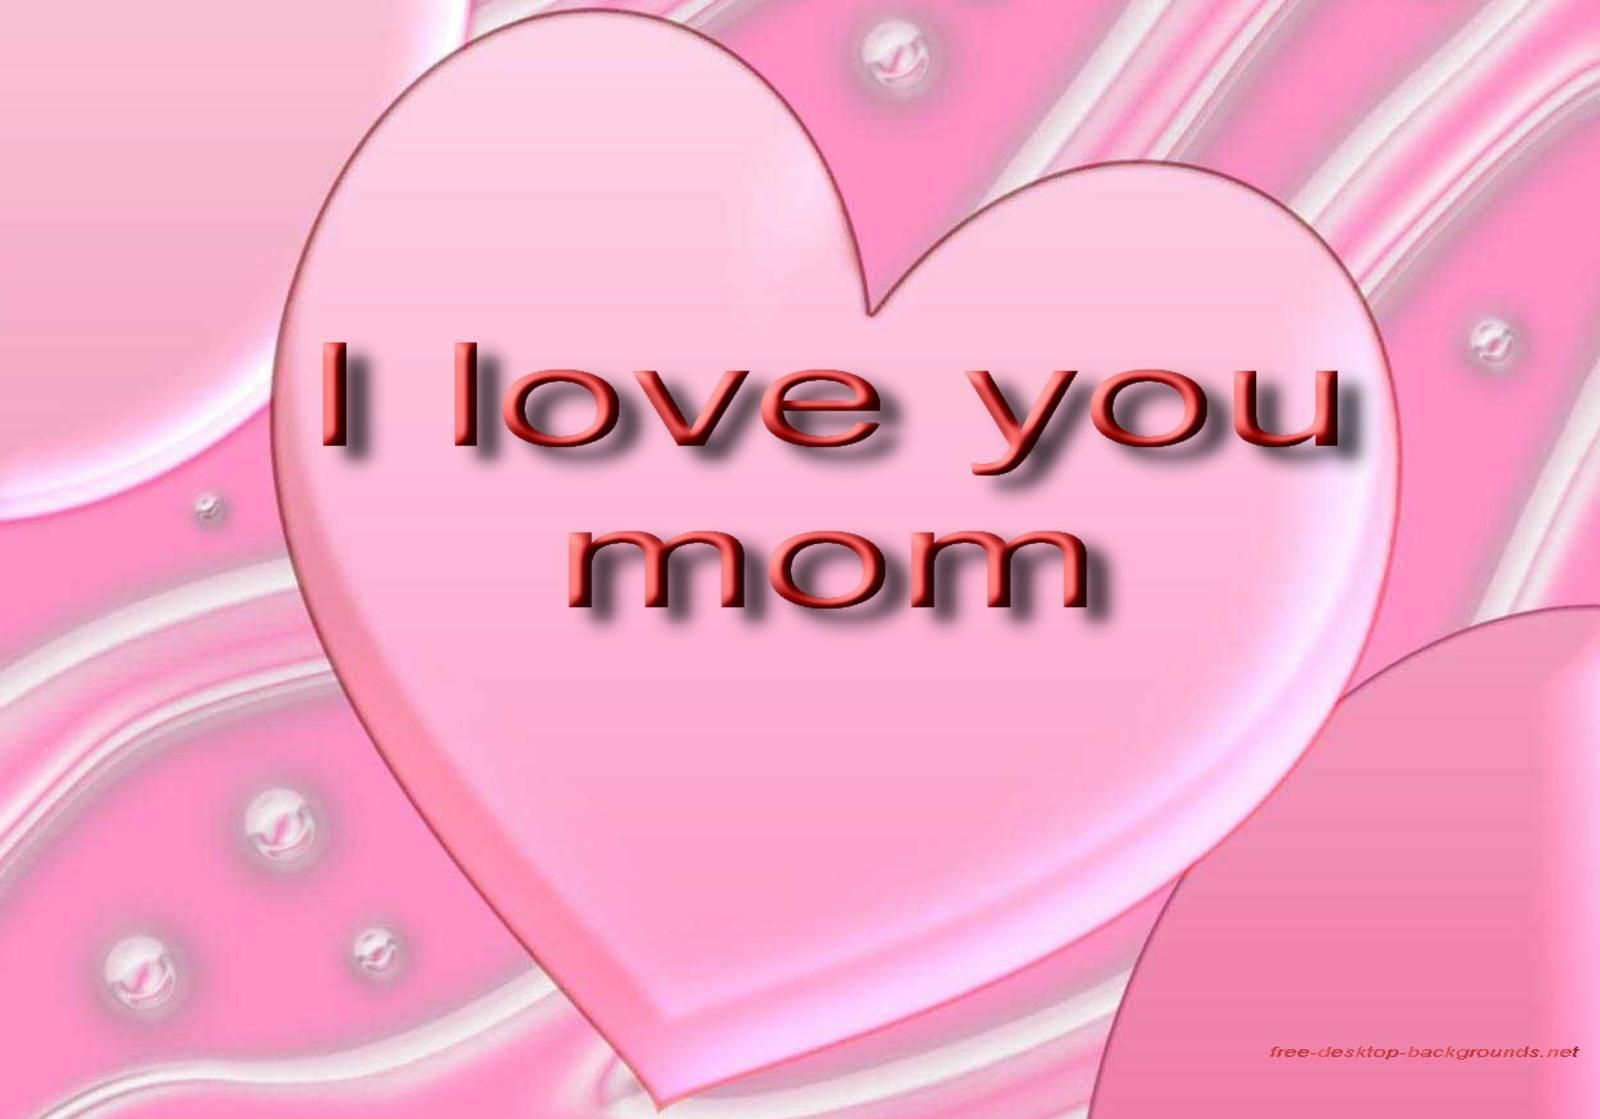 Best Images Of Love You Mother I Love You Mom Wallpapers Wallpaper Cave Within Best Images Of Love You Moth I Love Mom I Love My Mother Love You Mom Quotes